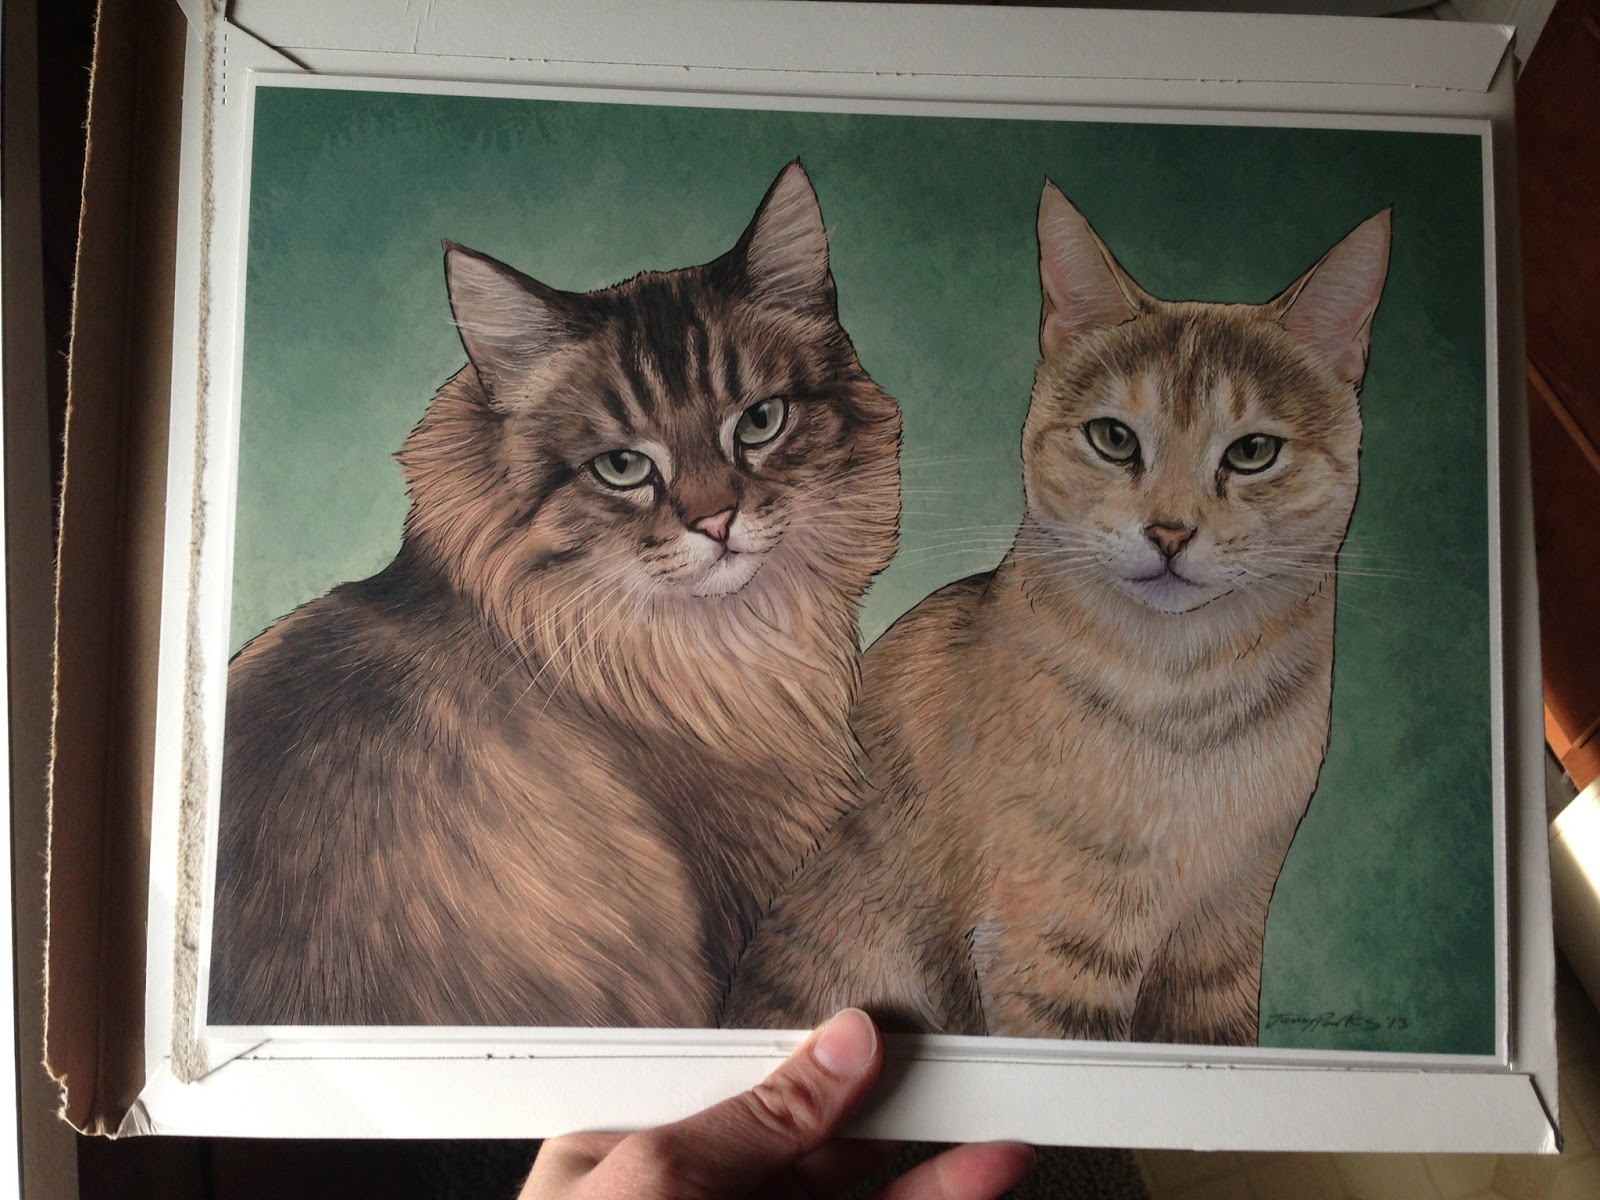 Scrapbook ideas niagara falls - Jenny Parks Created A Relatively Accurate Portrait Of Oatmeal And Button Omelet The One Thing That She Was Not Aware Of In The Sample Photographs I Sent